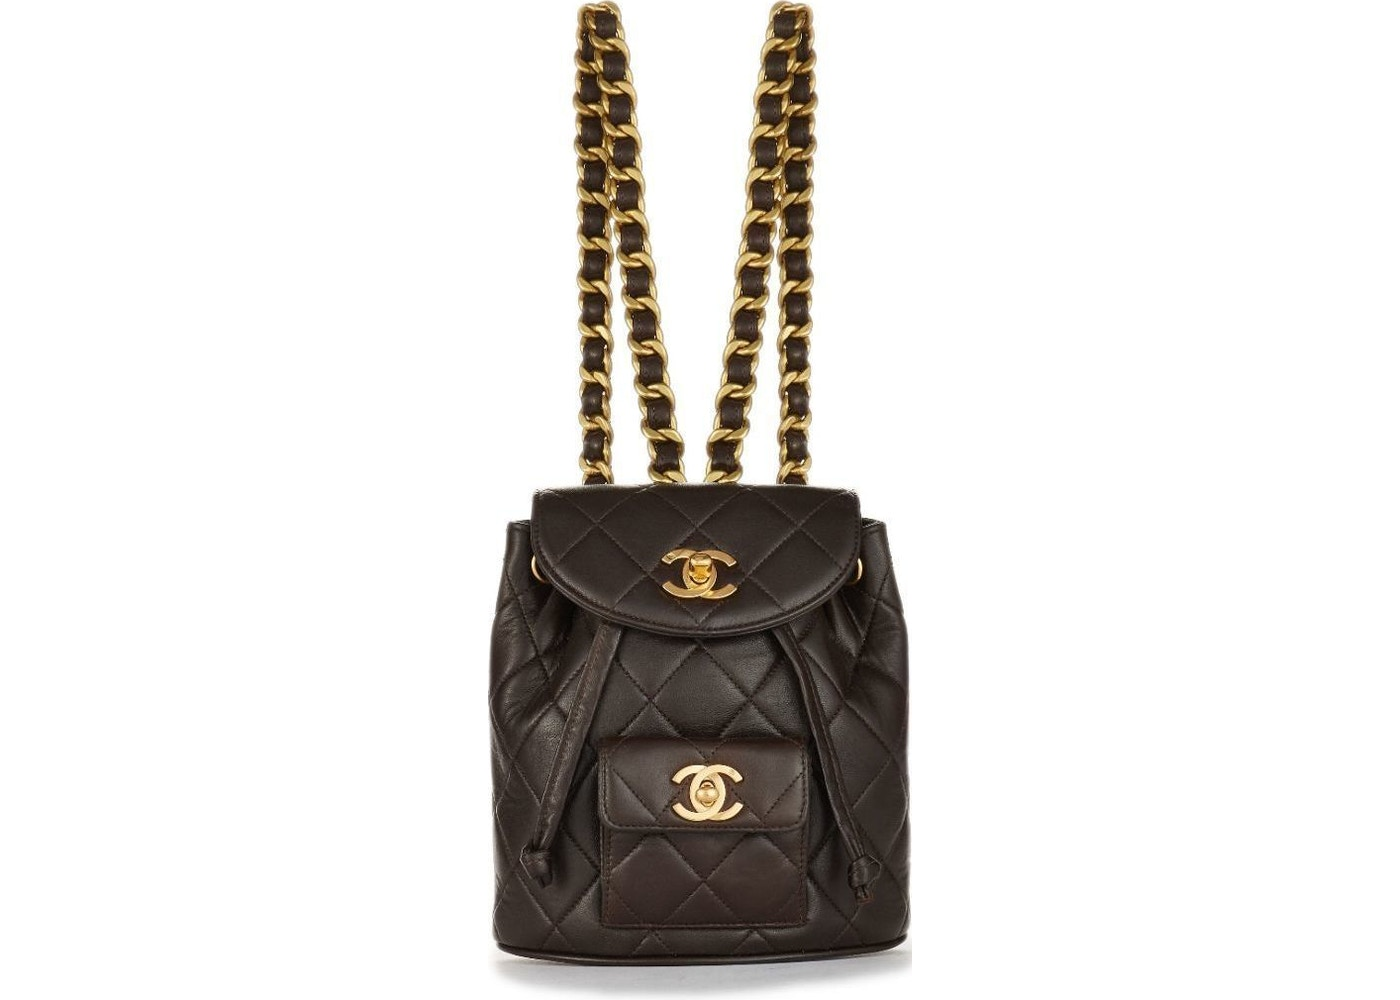 75f16f0dfd83 Chanel Backpack Classic Diamond Quilted Mini Chocolate Brown